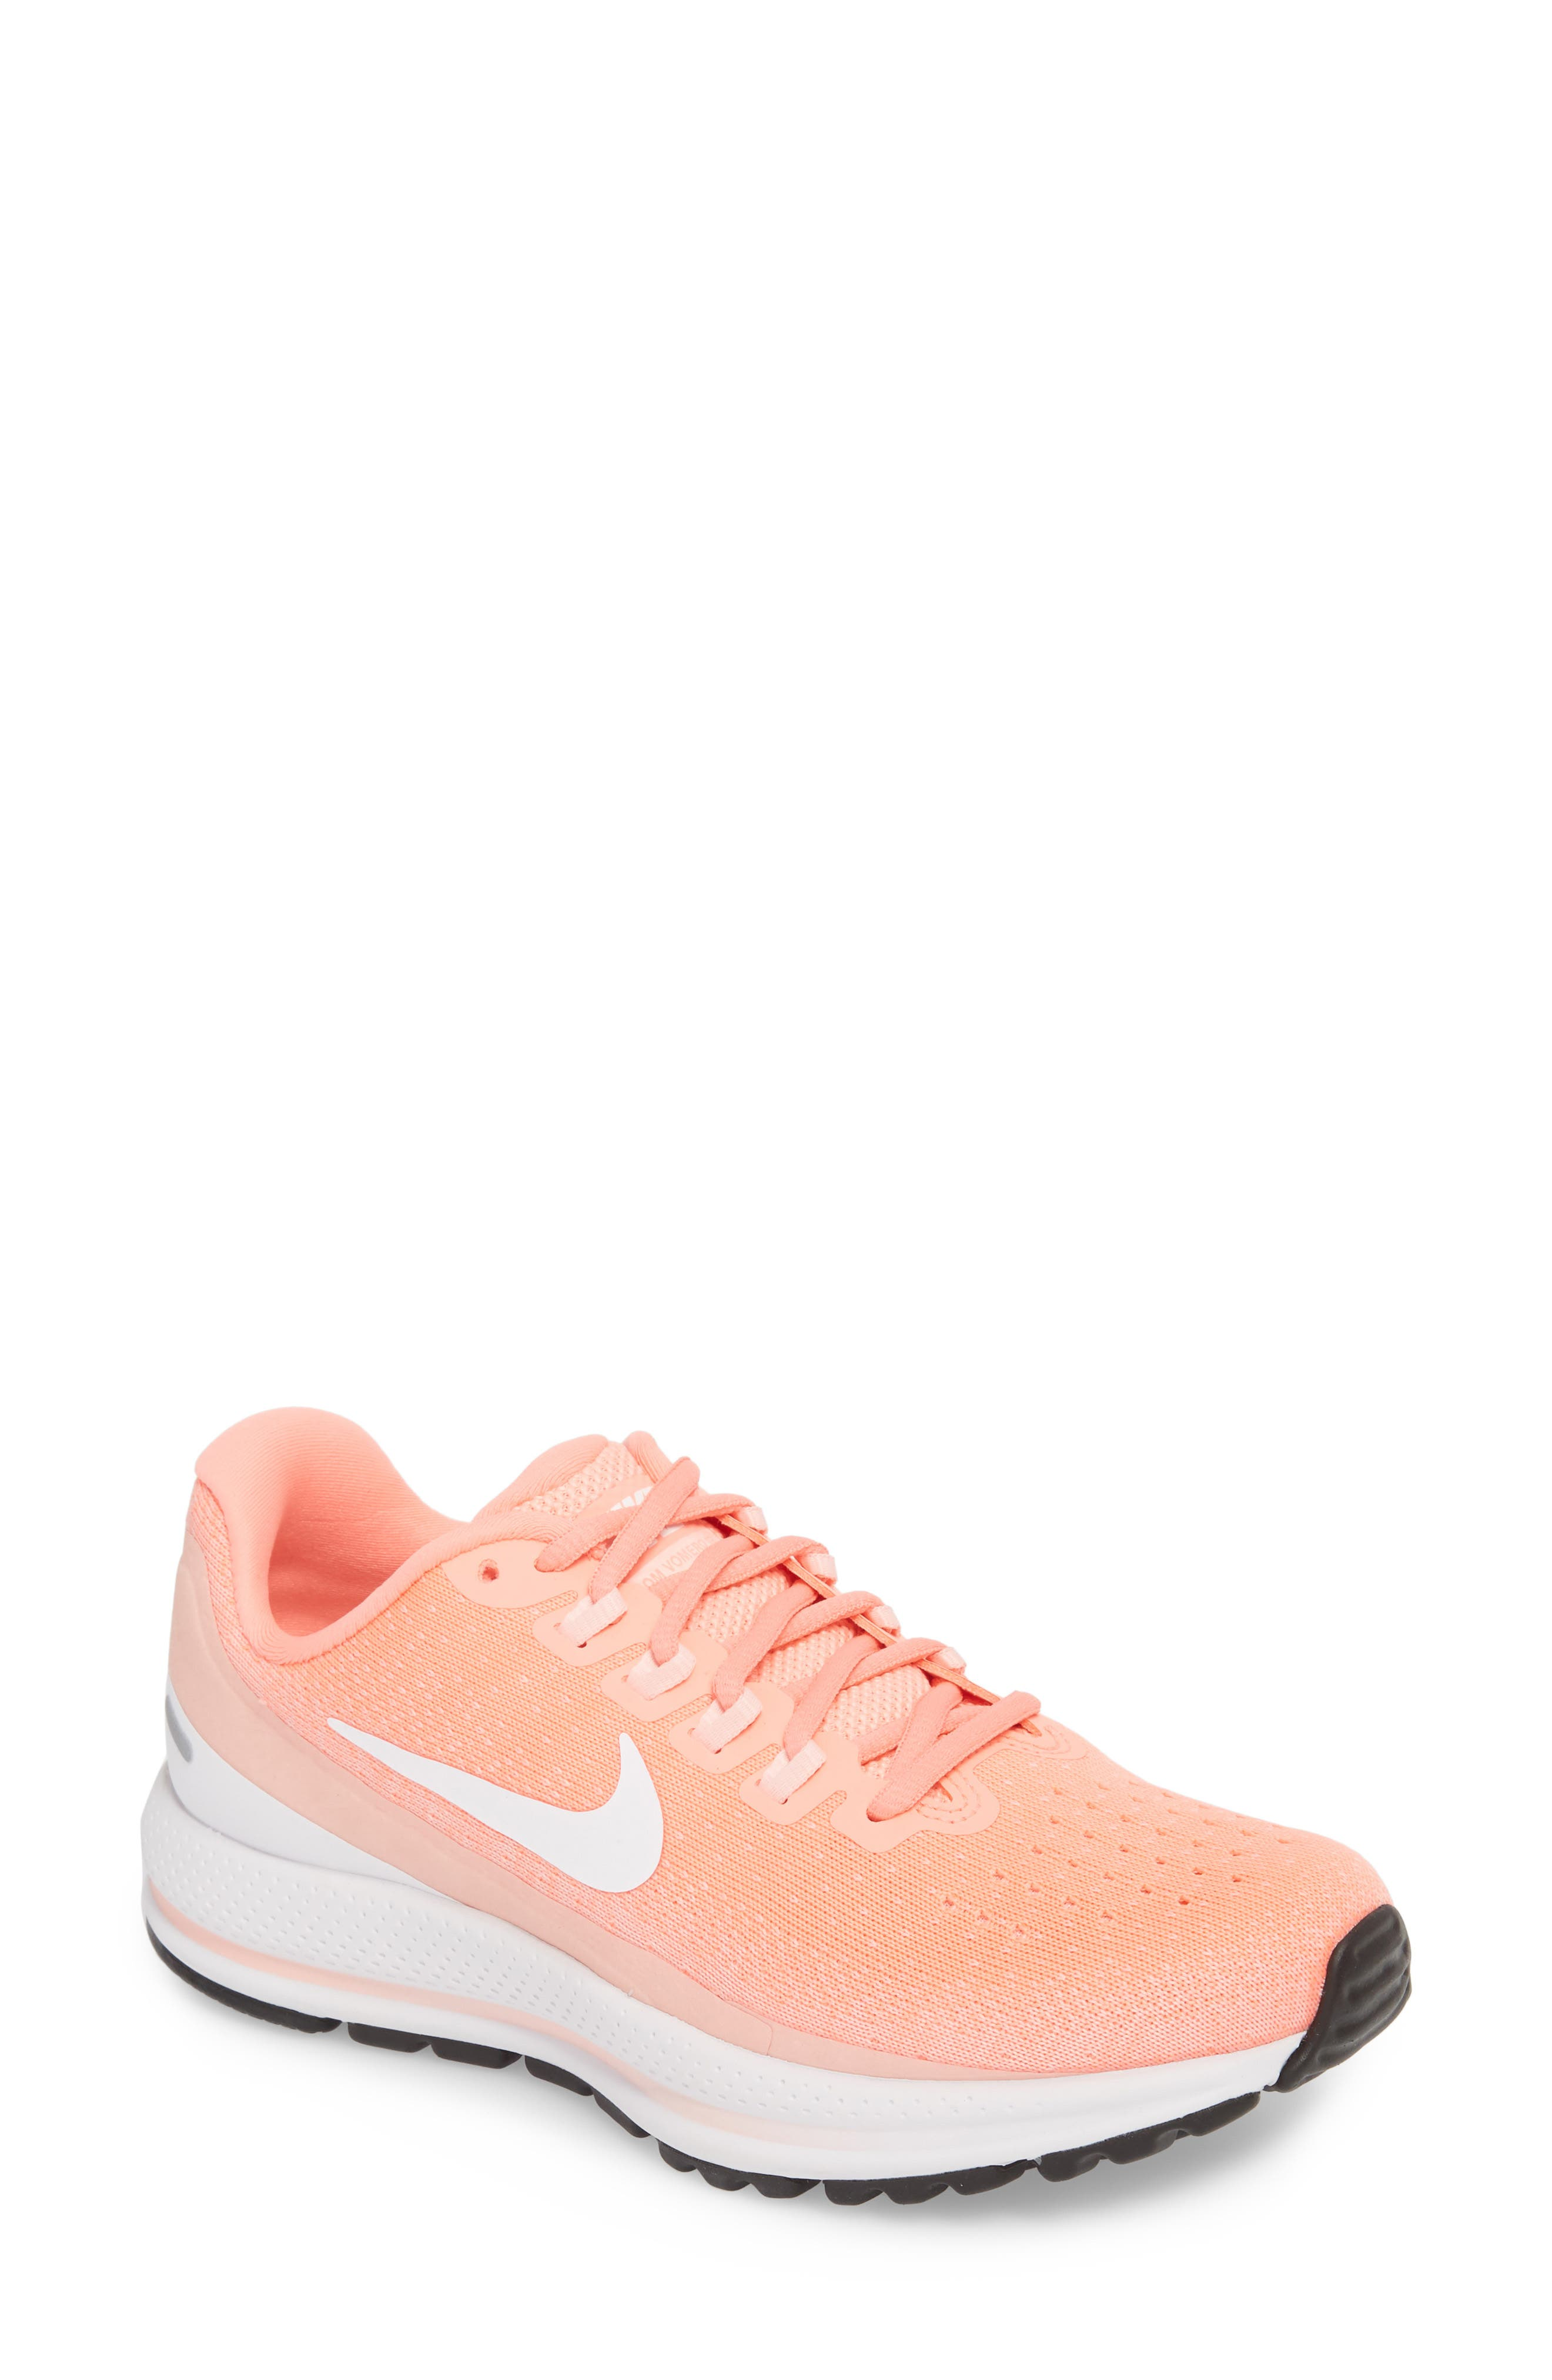 Air Zoom Vomero 13 Running Shoe,                             Main thumbnail 1, color,                             LIGHT ATOMIC PINK/ WHITE